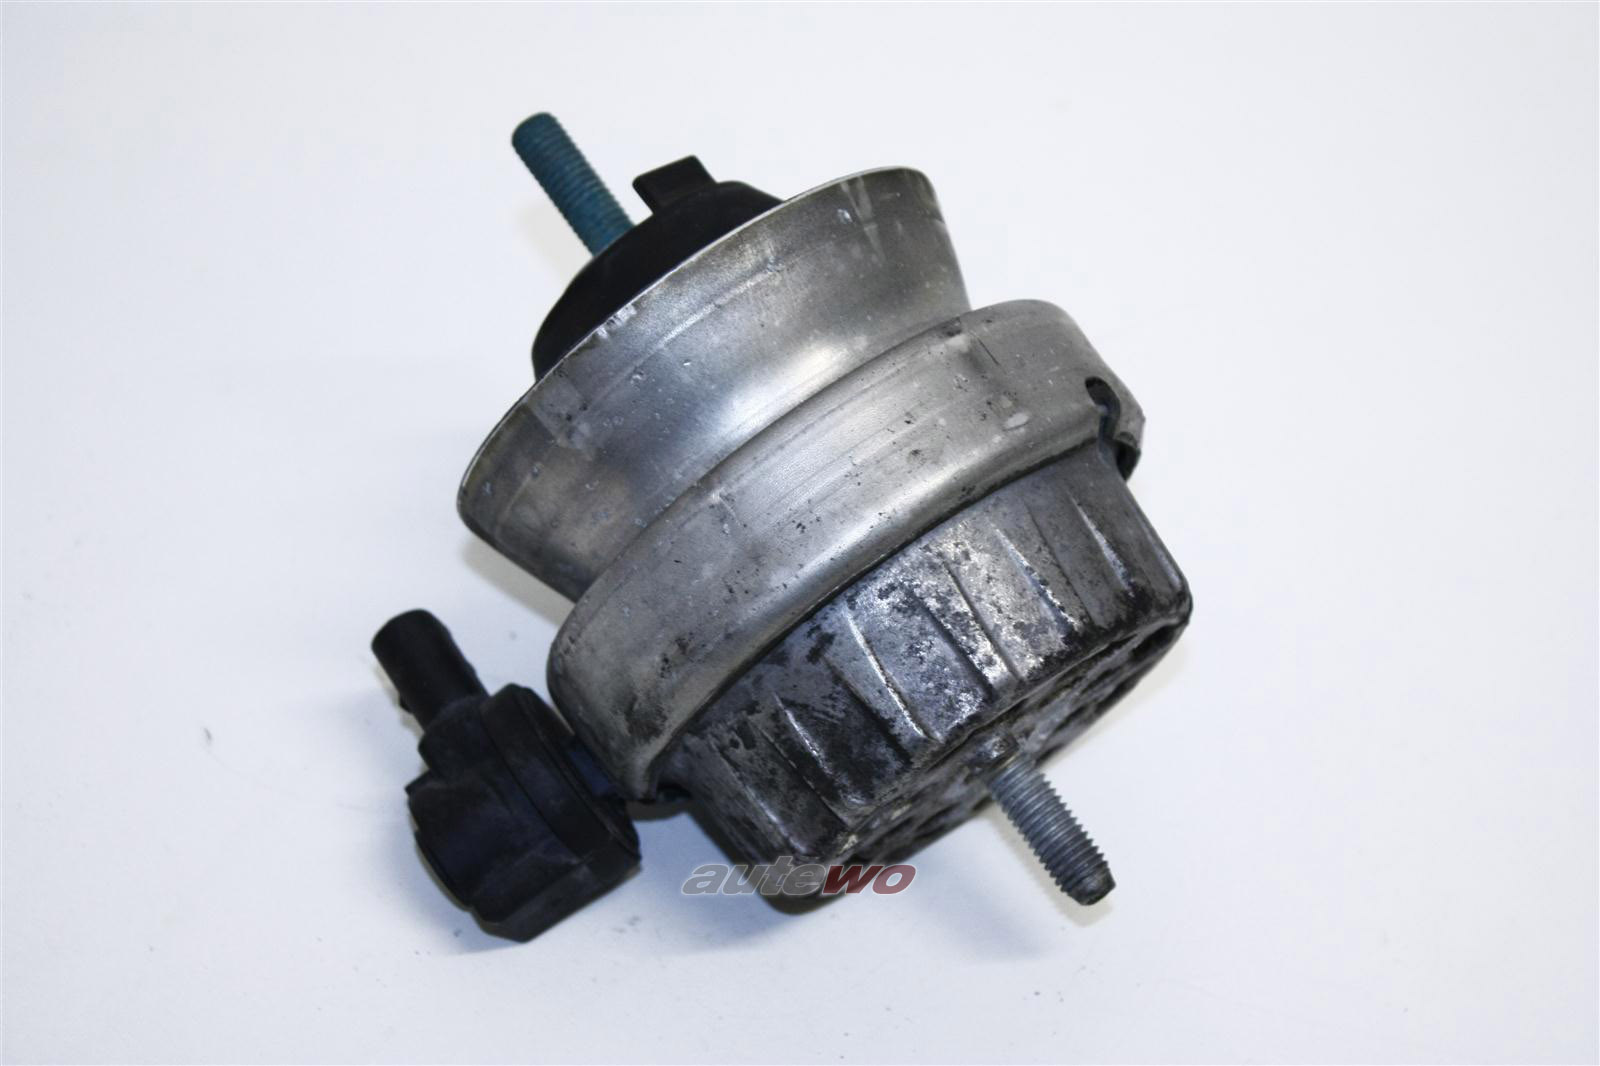 Audi A6 4F 3.0l BMK/BNG/ASB Motorlager/Hydrolager Links 4F0199379H